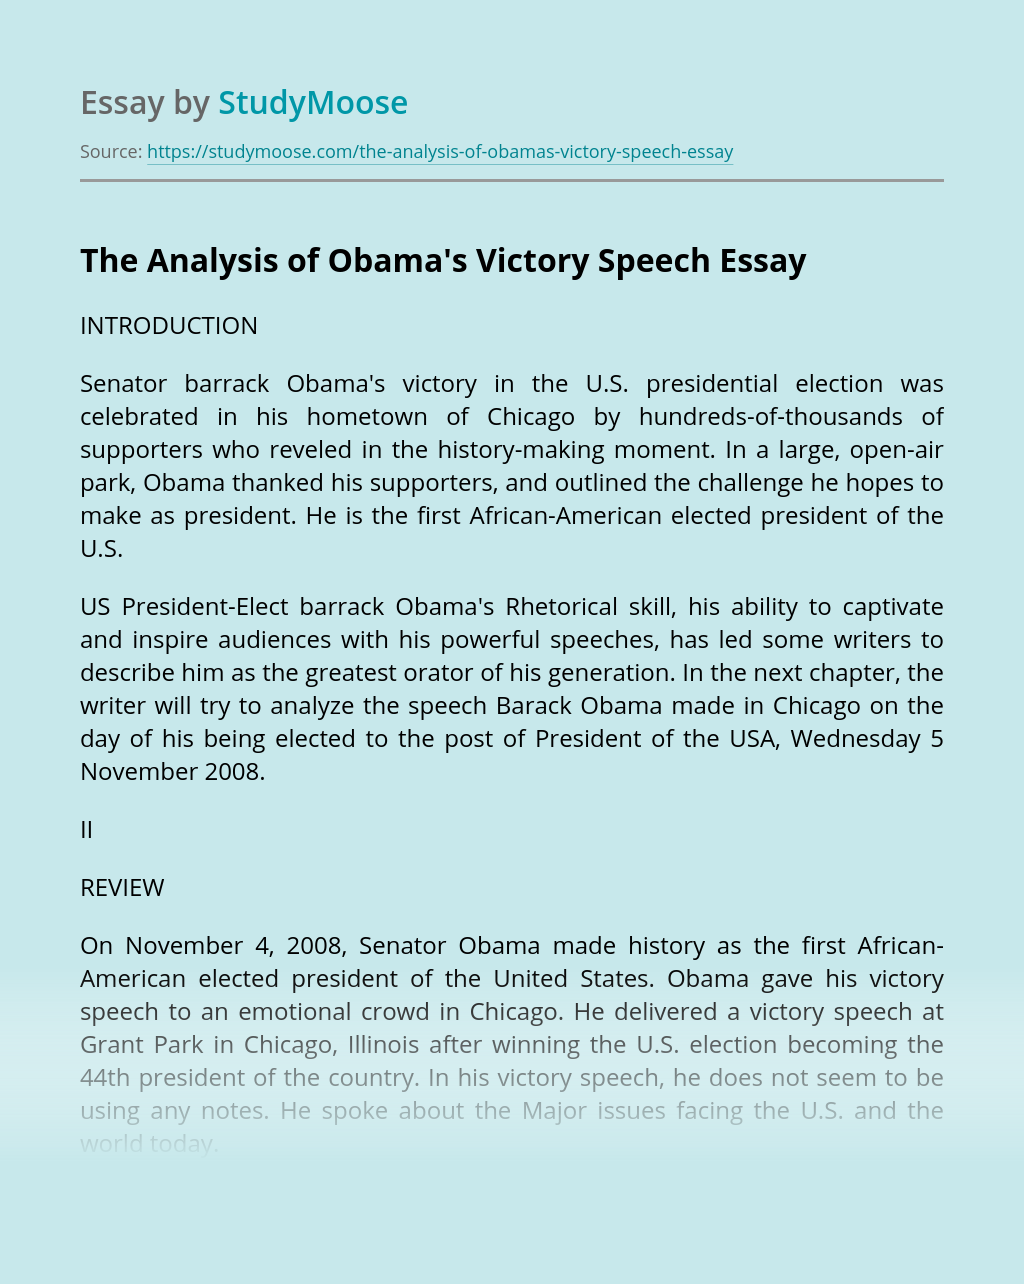 The Analysis of Obama's Victory Speech